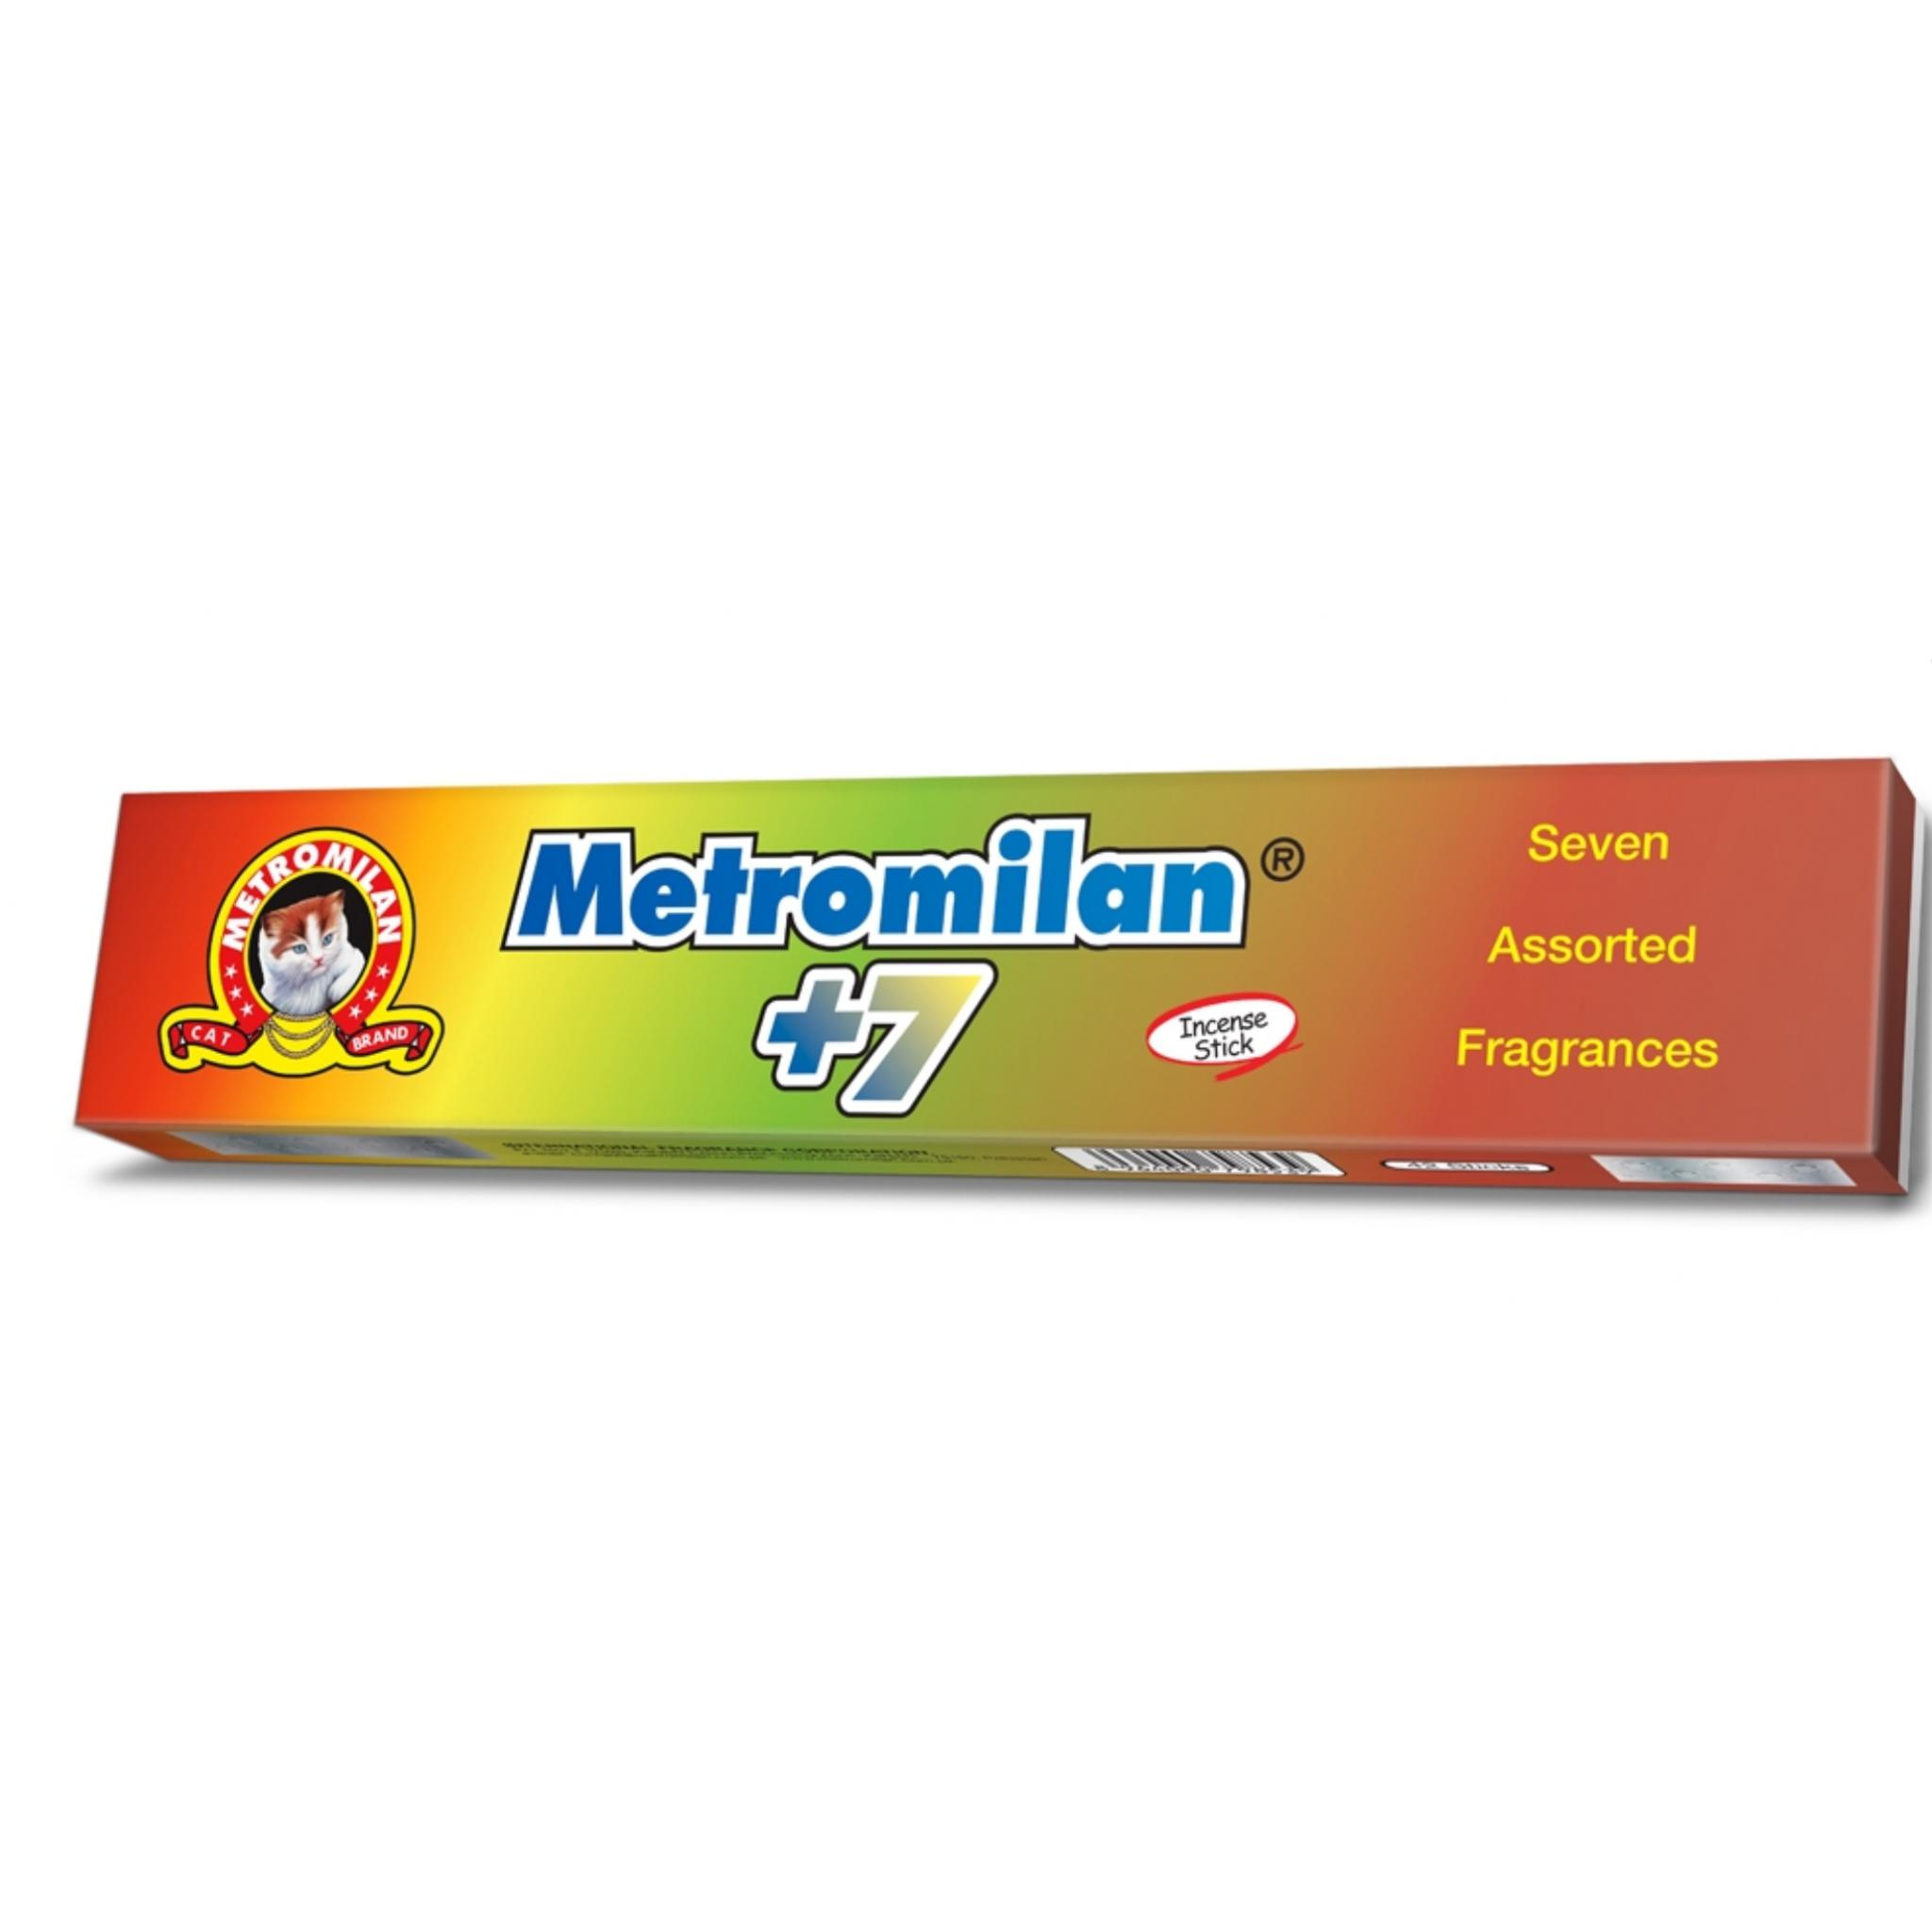 Metromilan +7 Assorted Fragrances